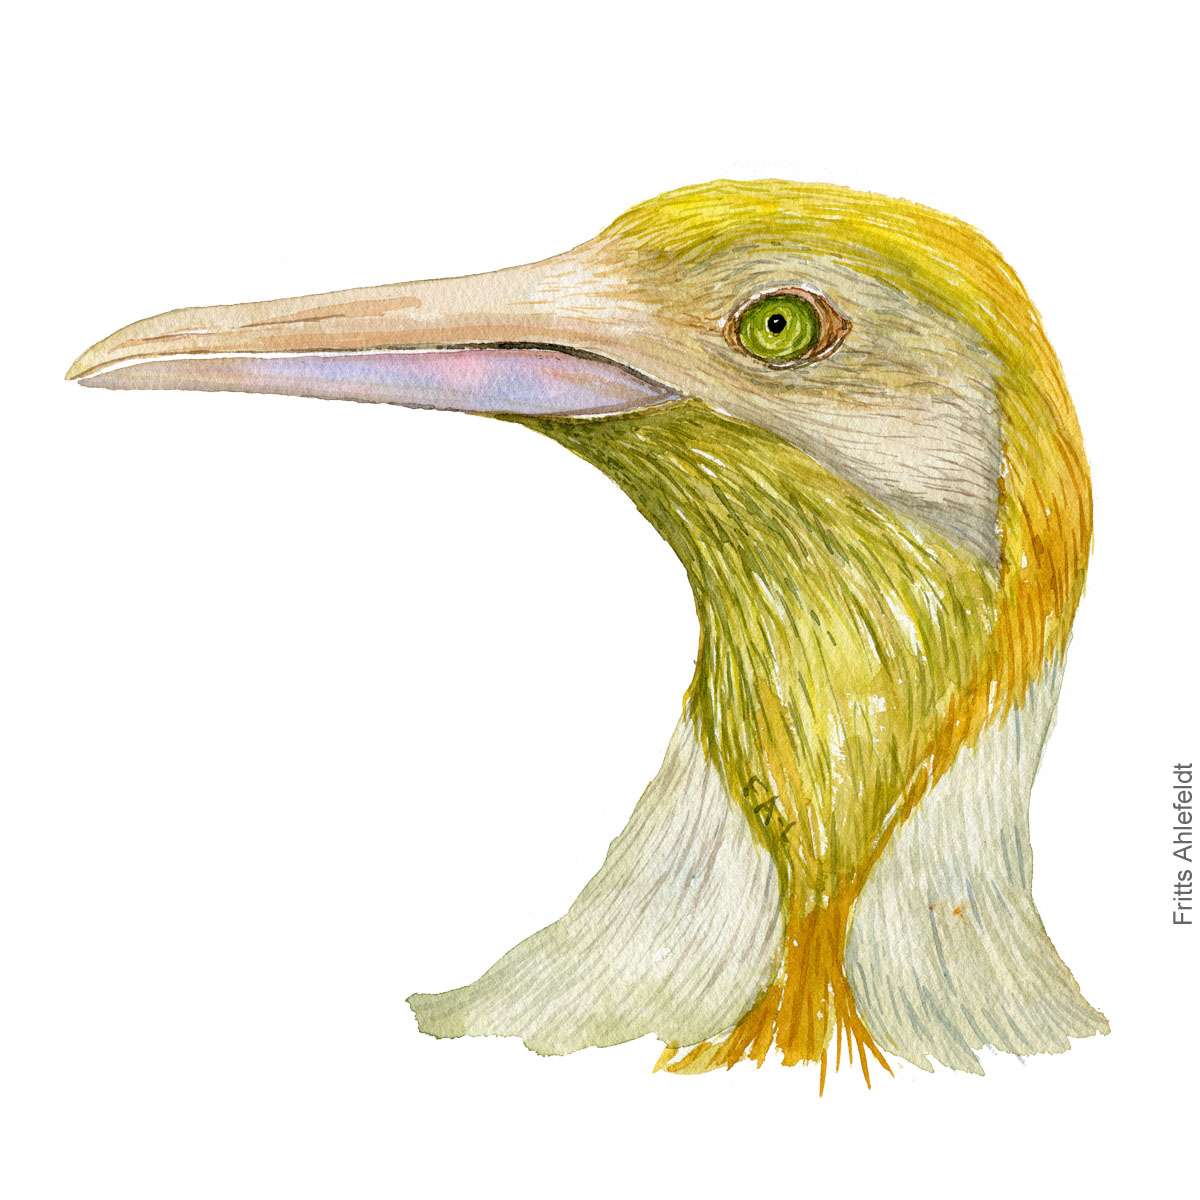 Head of yellow-king-penguin-Aptenodytes patagonicus-leucism drawn journalism by Frits Ahlefeldt